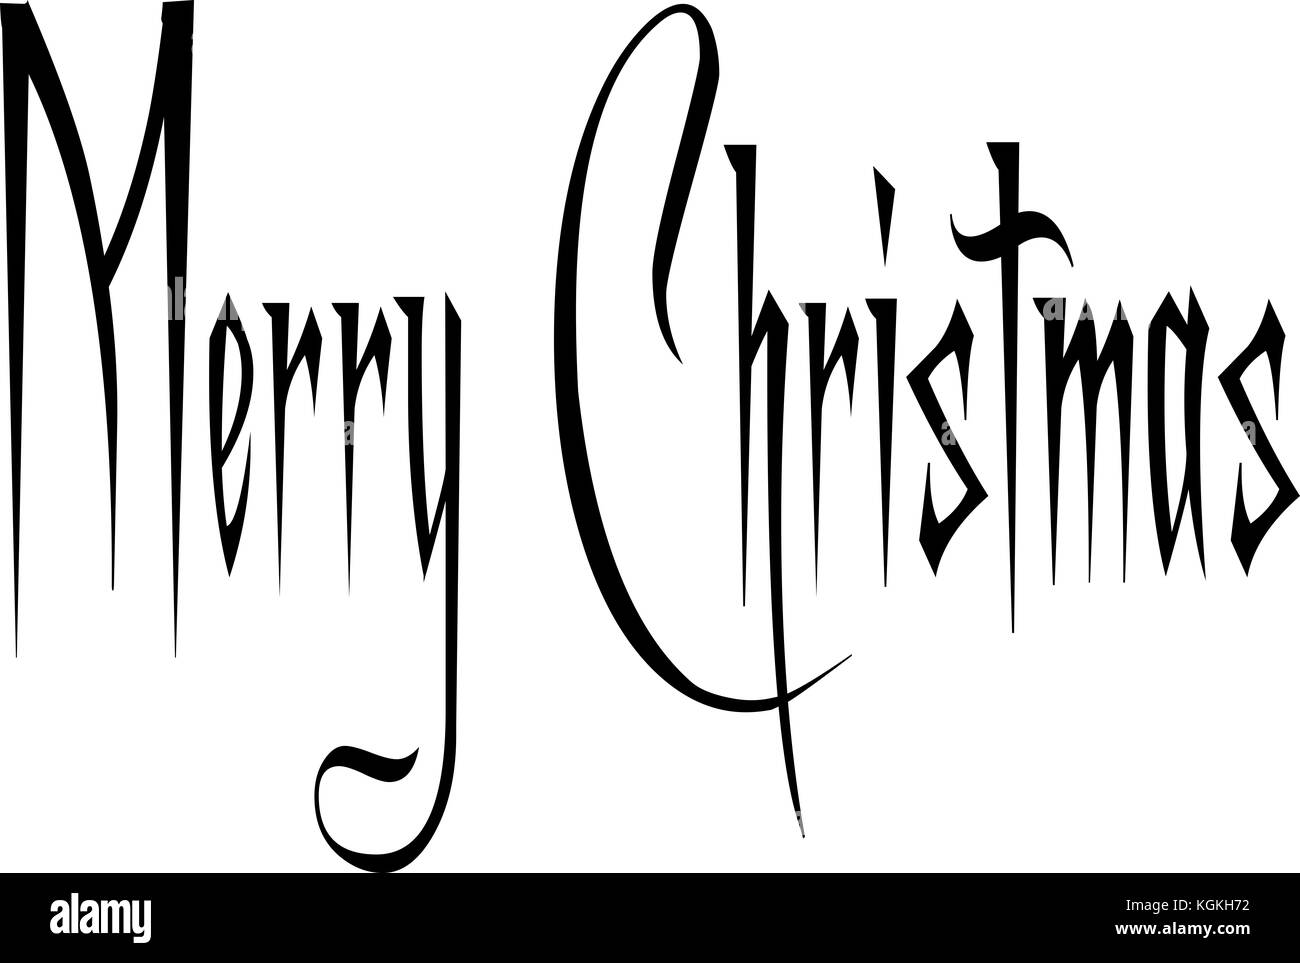 Merry Christmas text sign illustration writen in English on a white  Background - Stock Image